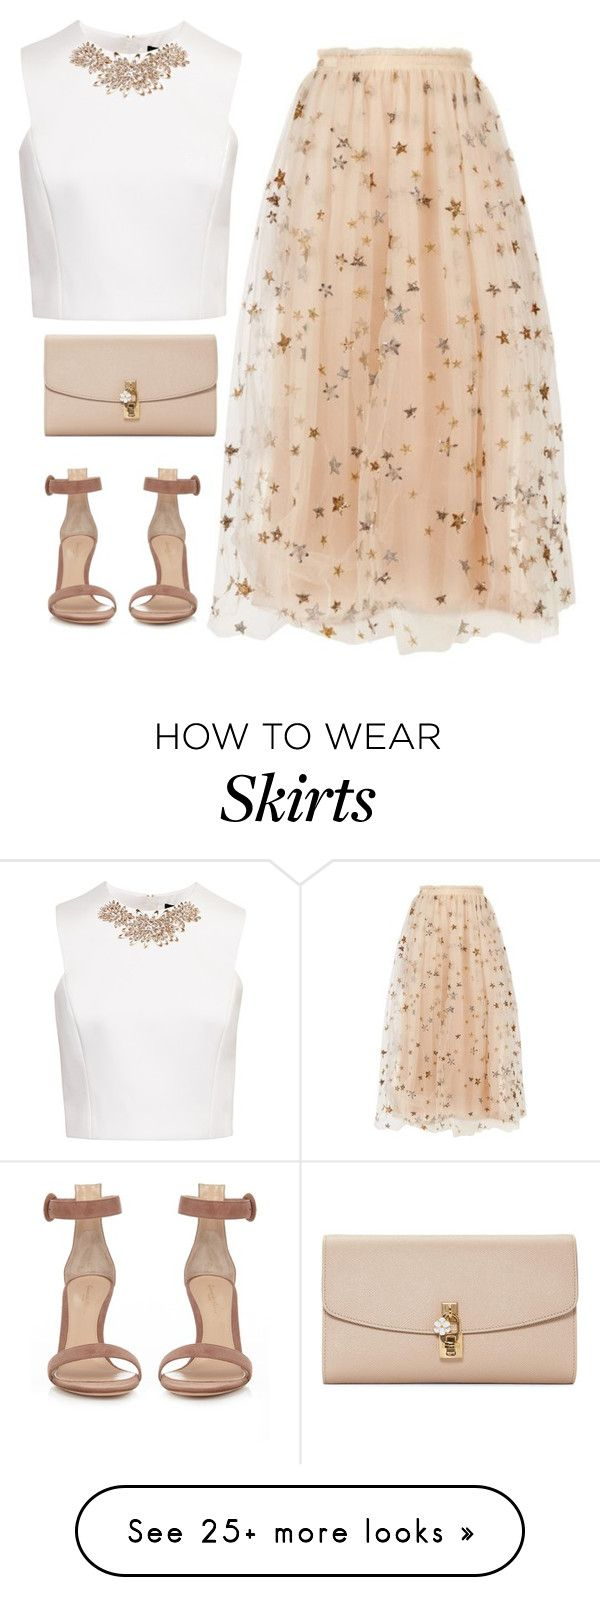 """""""stars pattern skirt"""" by shaym345 on Polyvore featuring Valentino, Ted Baker, Gianvito Rossi and Dolce&Gabbana"""